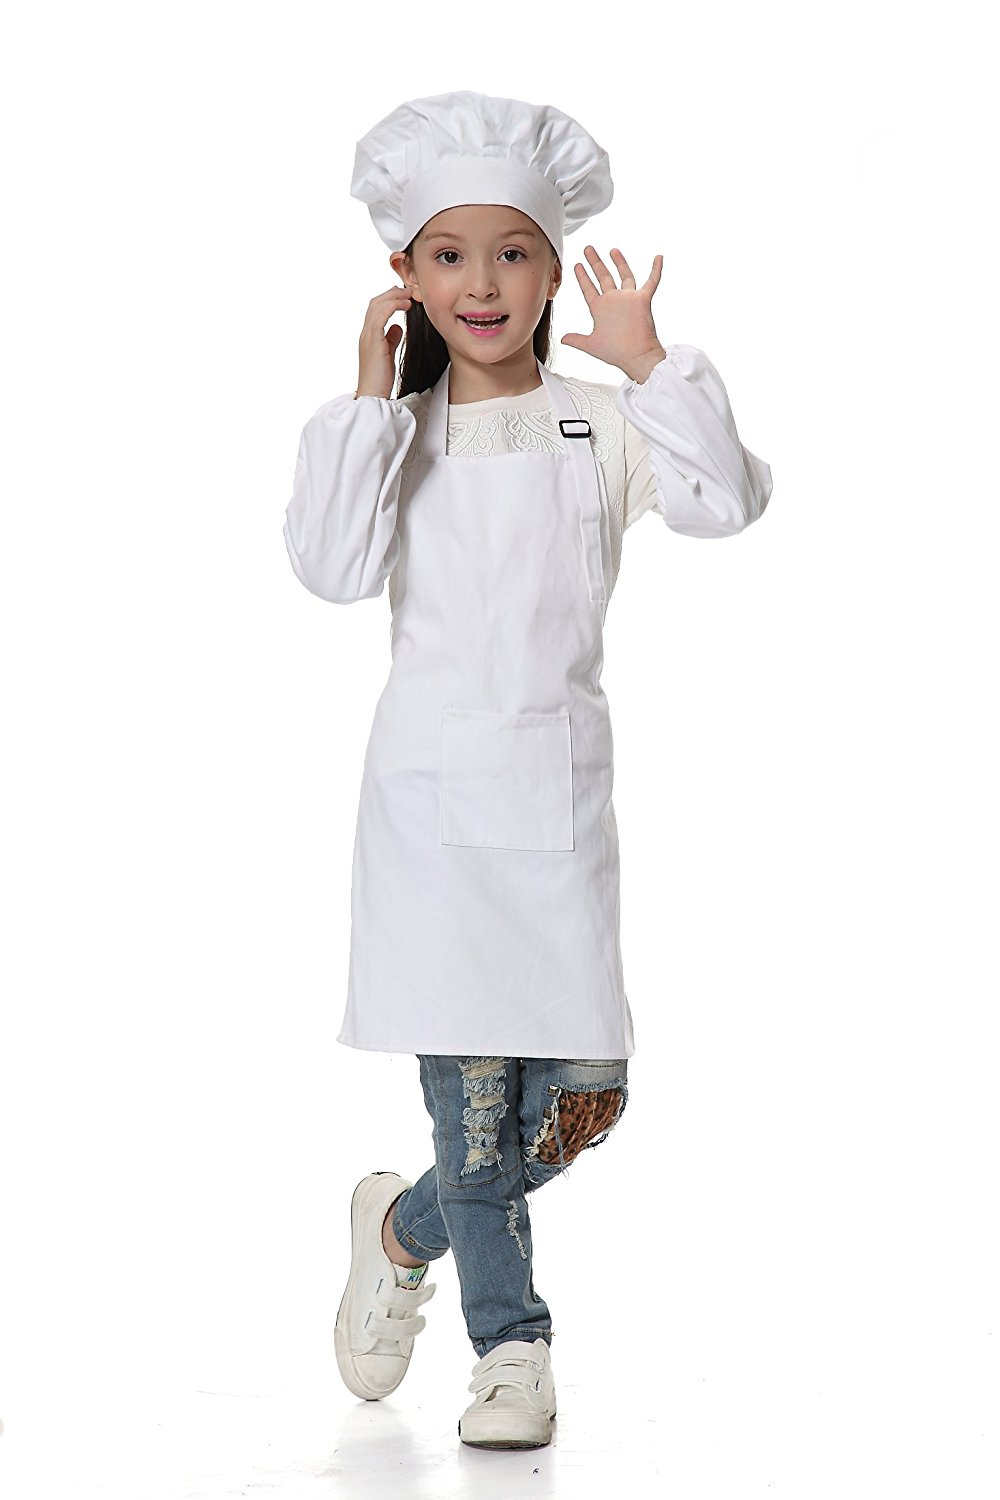 Buy Osbel Deluxe Childs Chef Hat Apron Set Childrens Kitchen Cooking